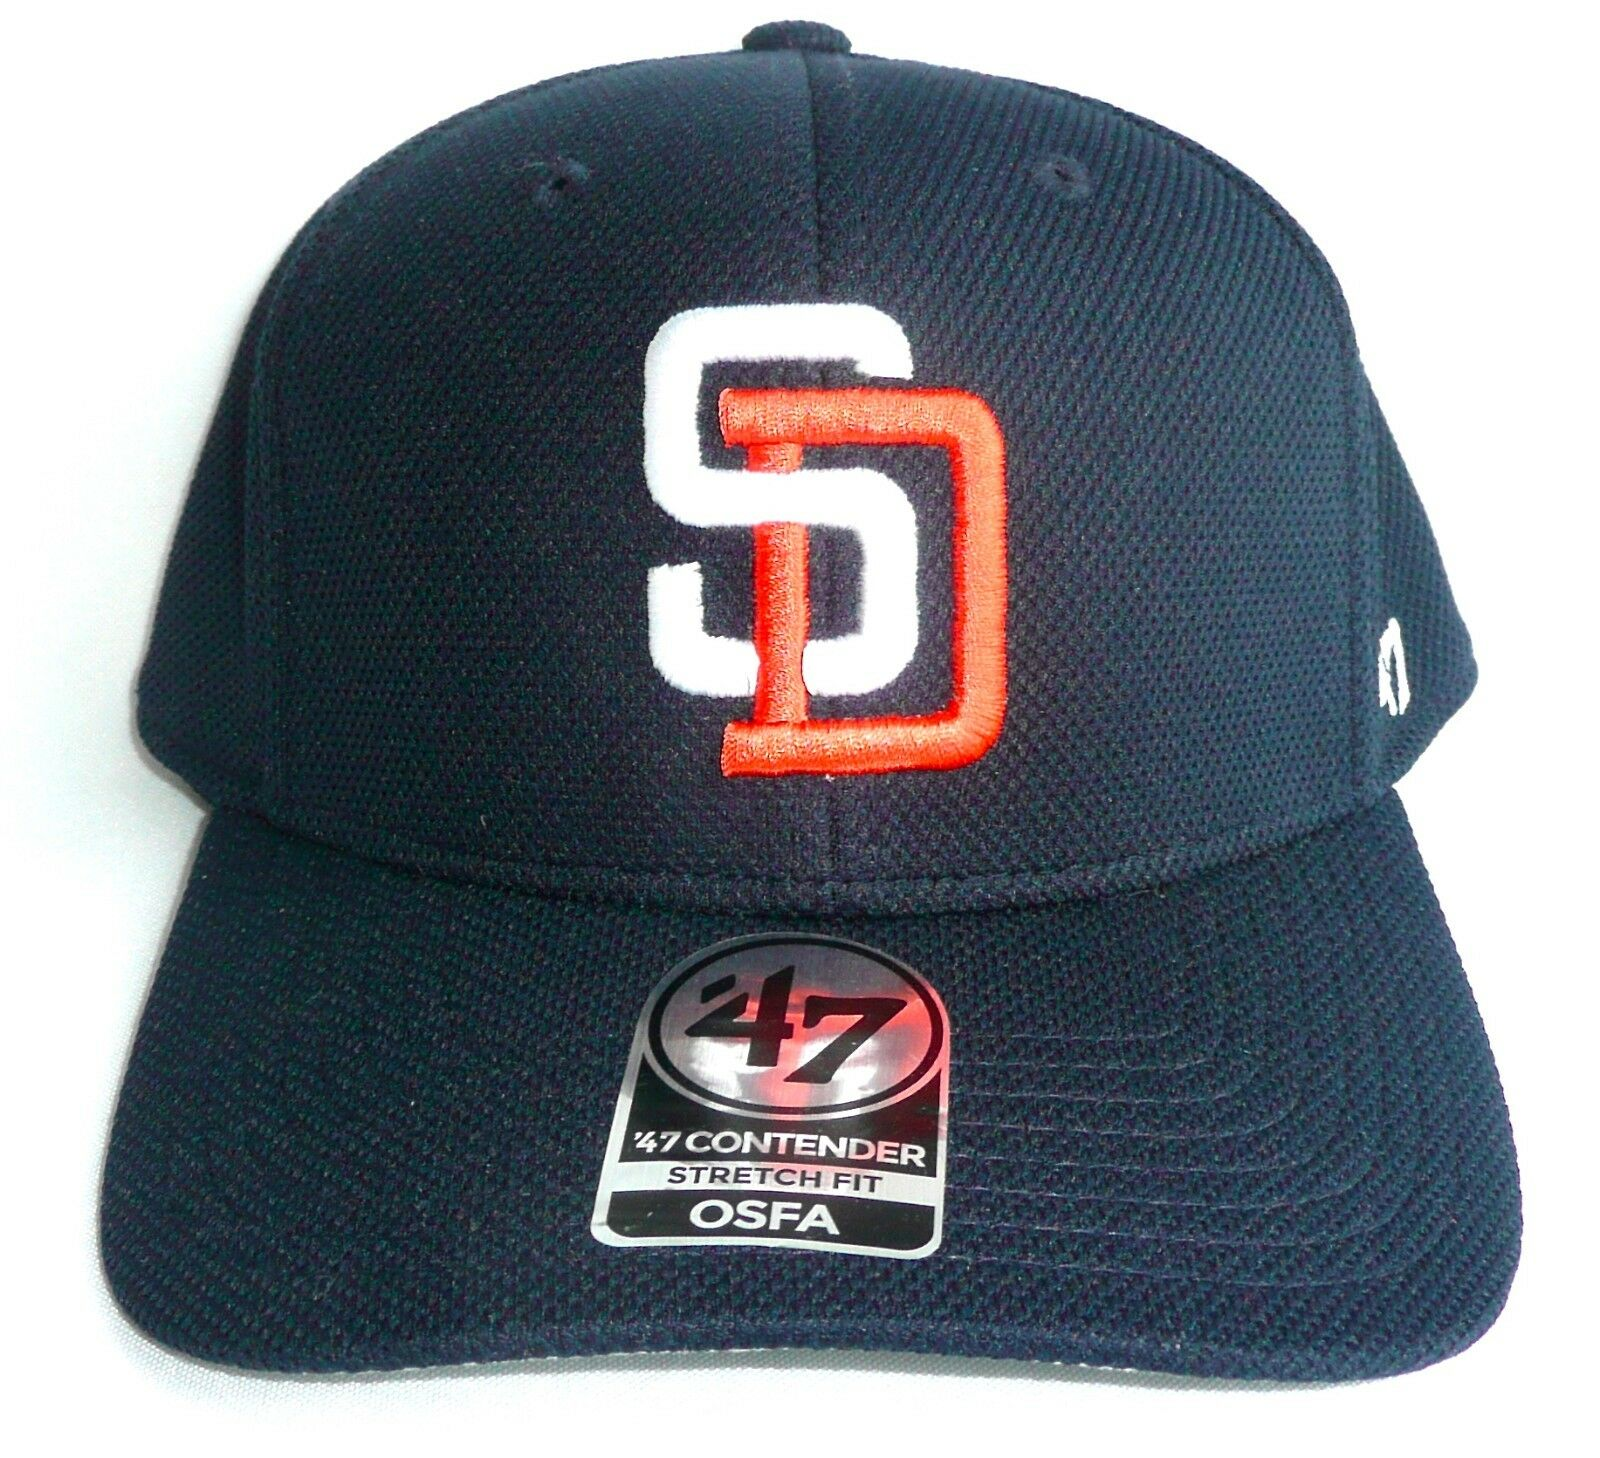 official photos b68a1 0fdd2 ... spain san diego padres fit 47 brand contender stretch fit padres hat cap  mlb forty seven